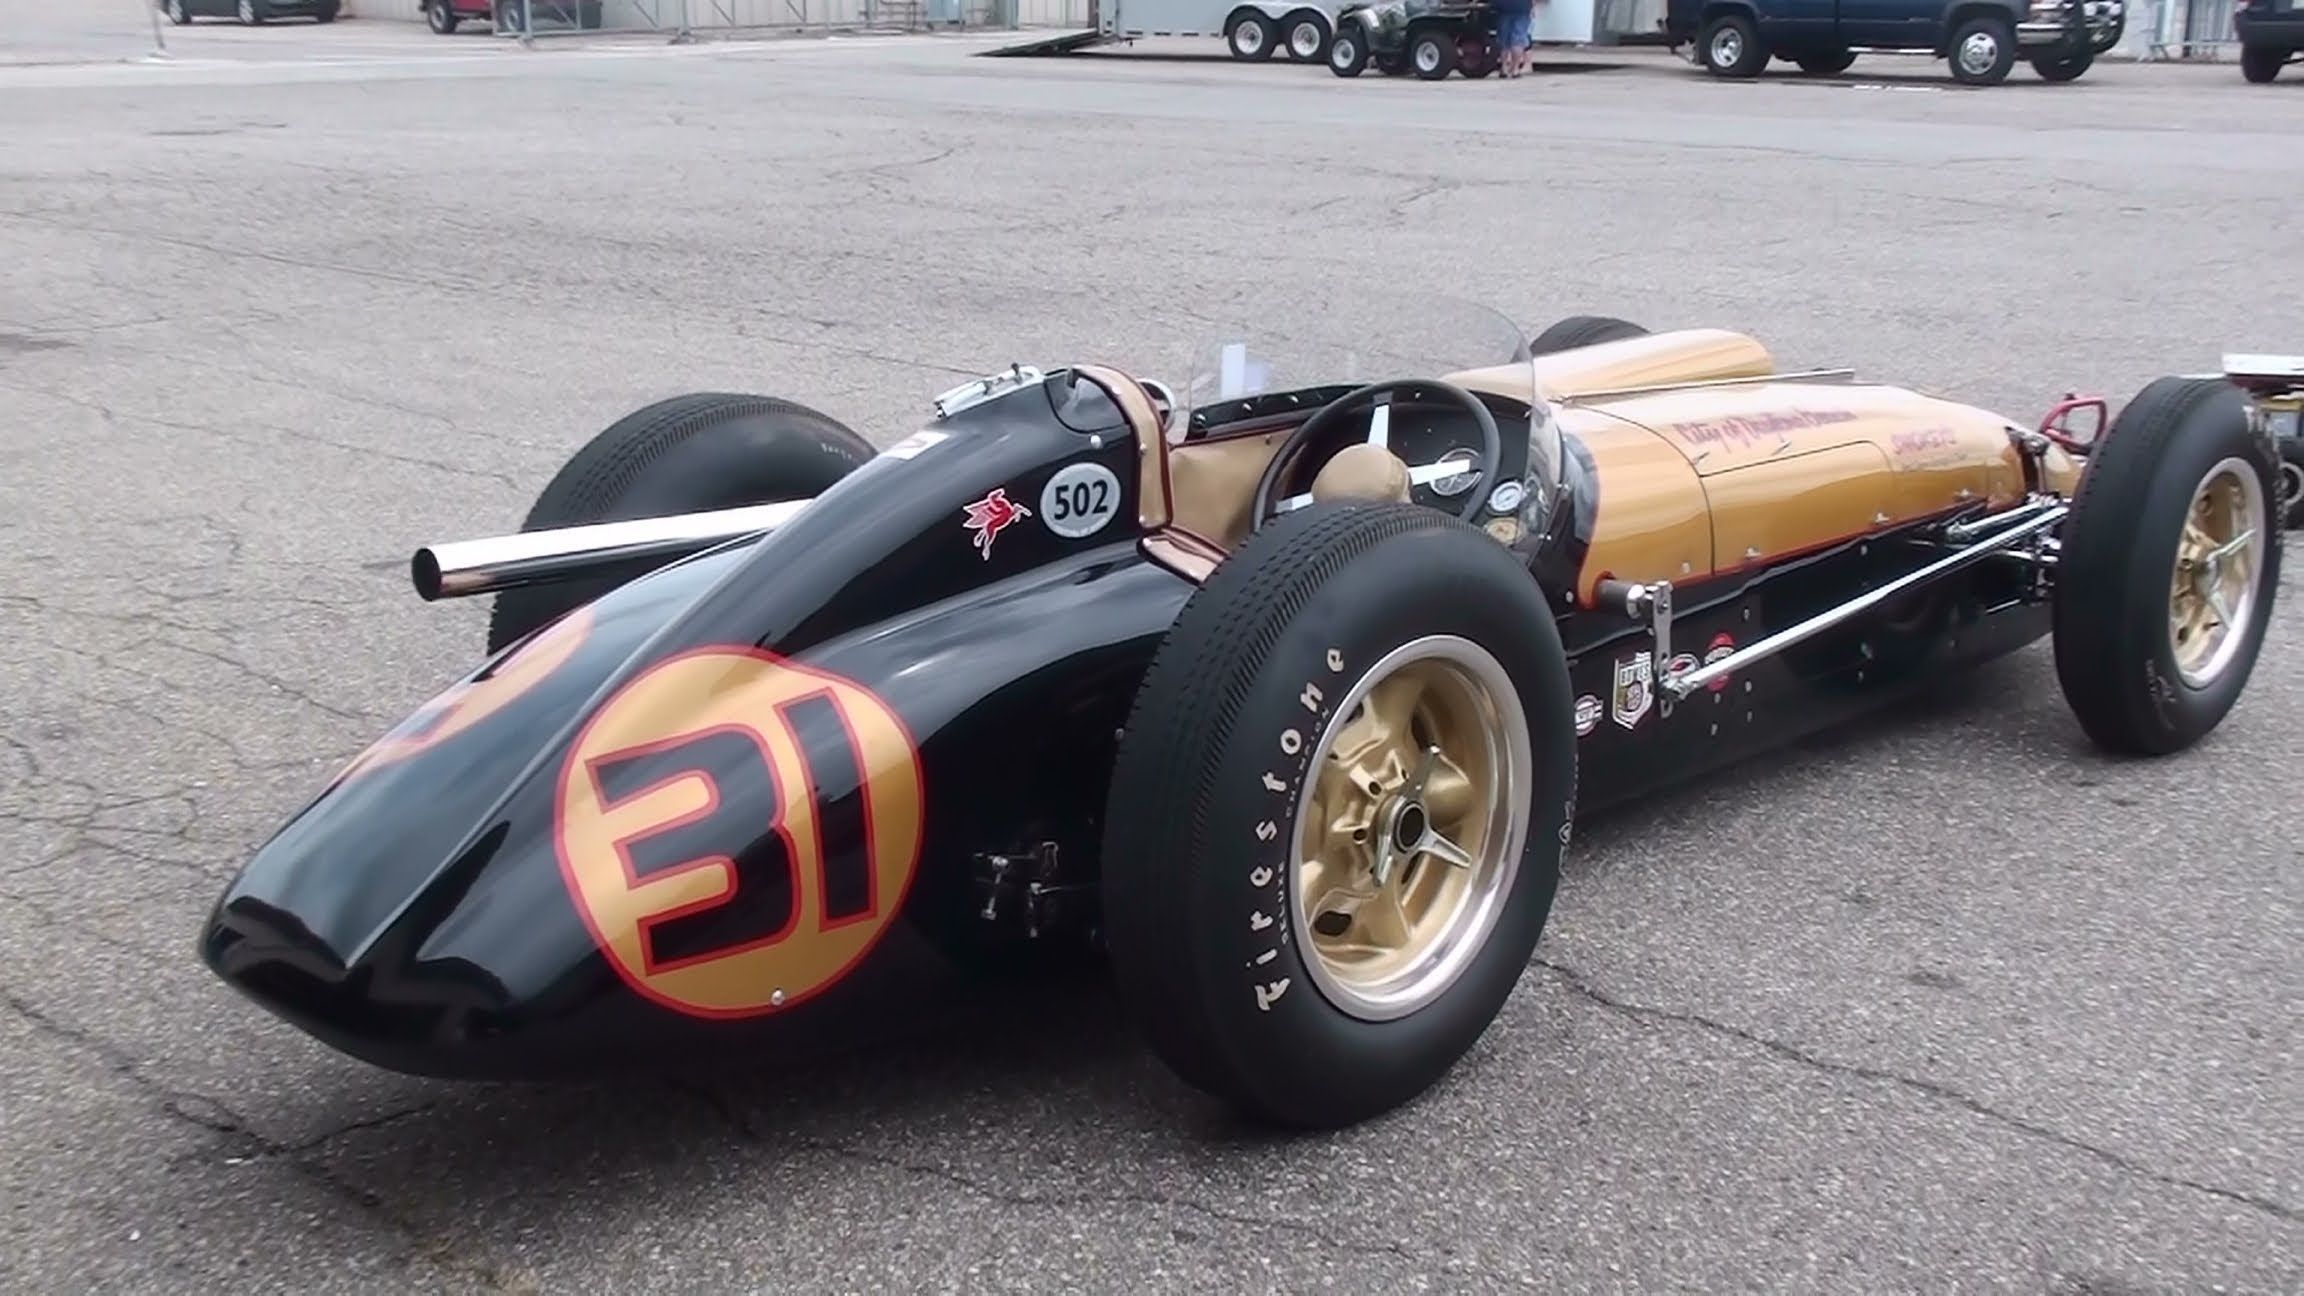 1958 Sprint Car Vintage Race Car Paul Doody Special: 1950s Indy Cars Startup And Race. LOUD